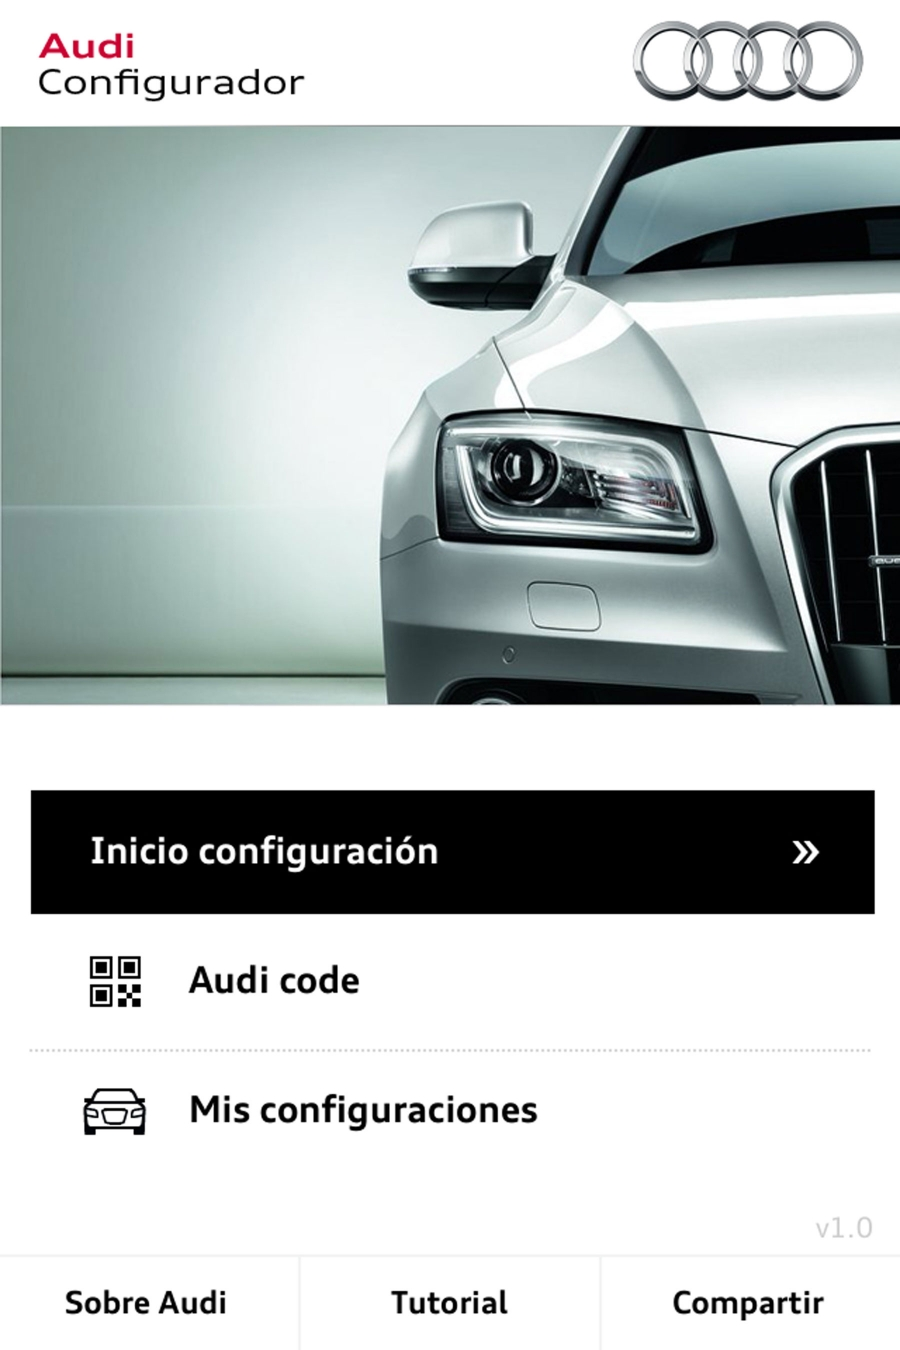 Audi launches new configurator app for Iphone and Ipad